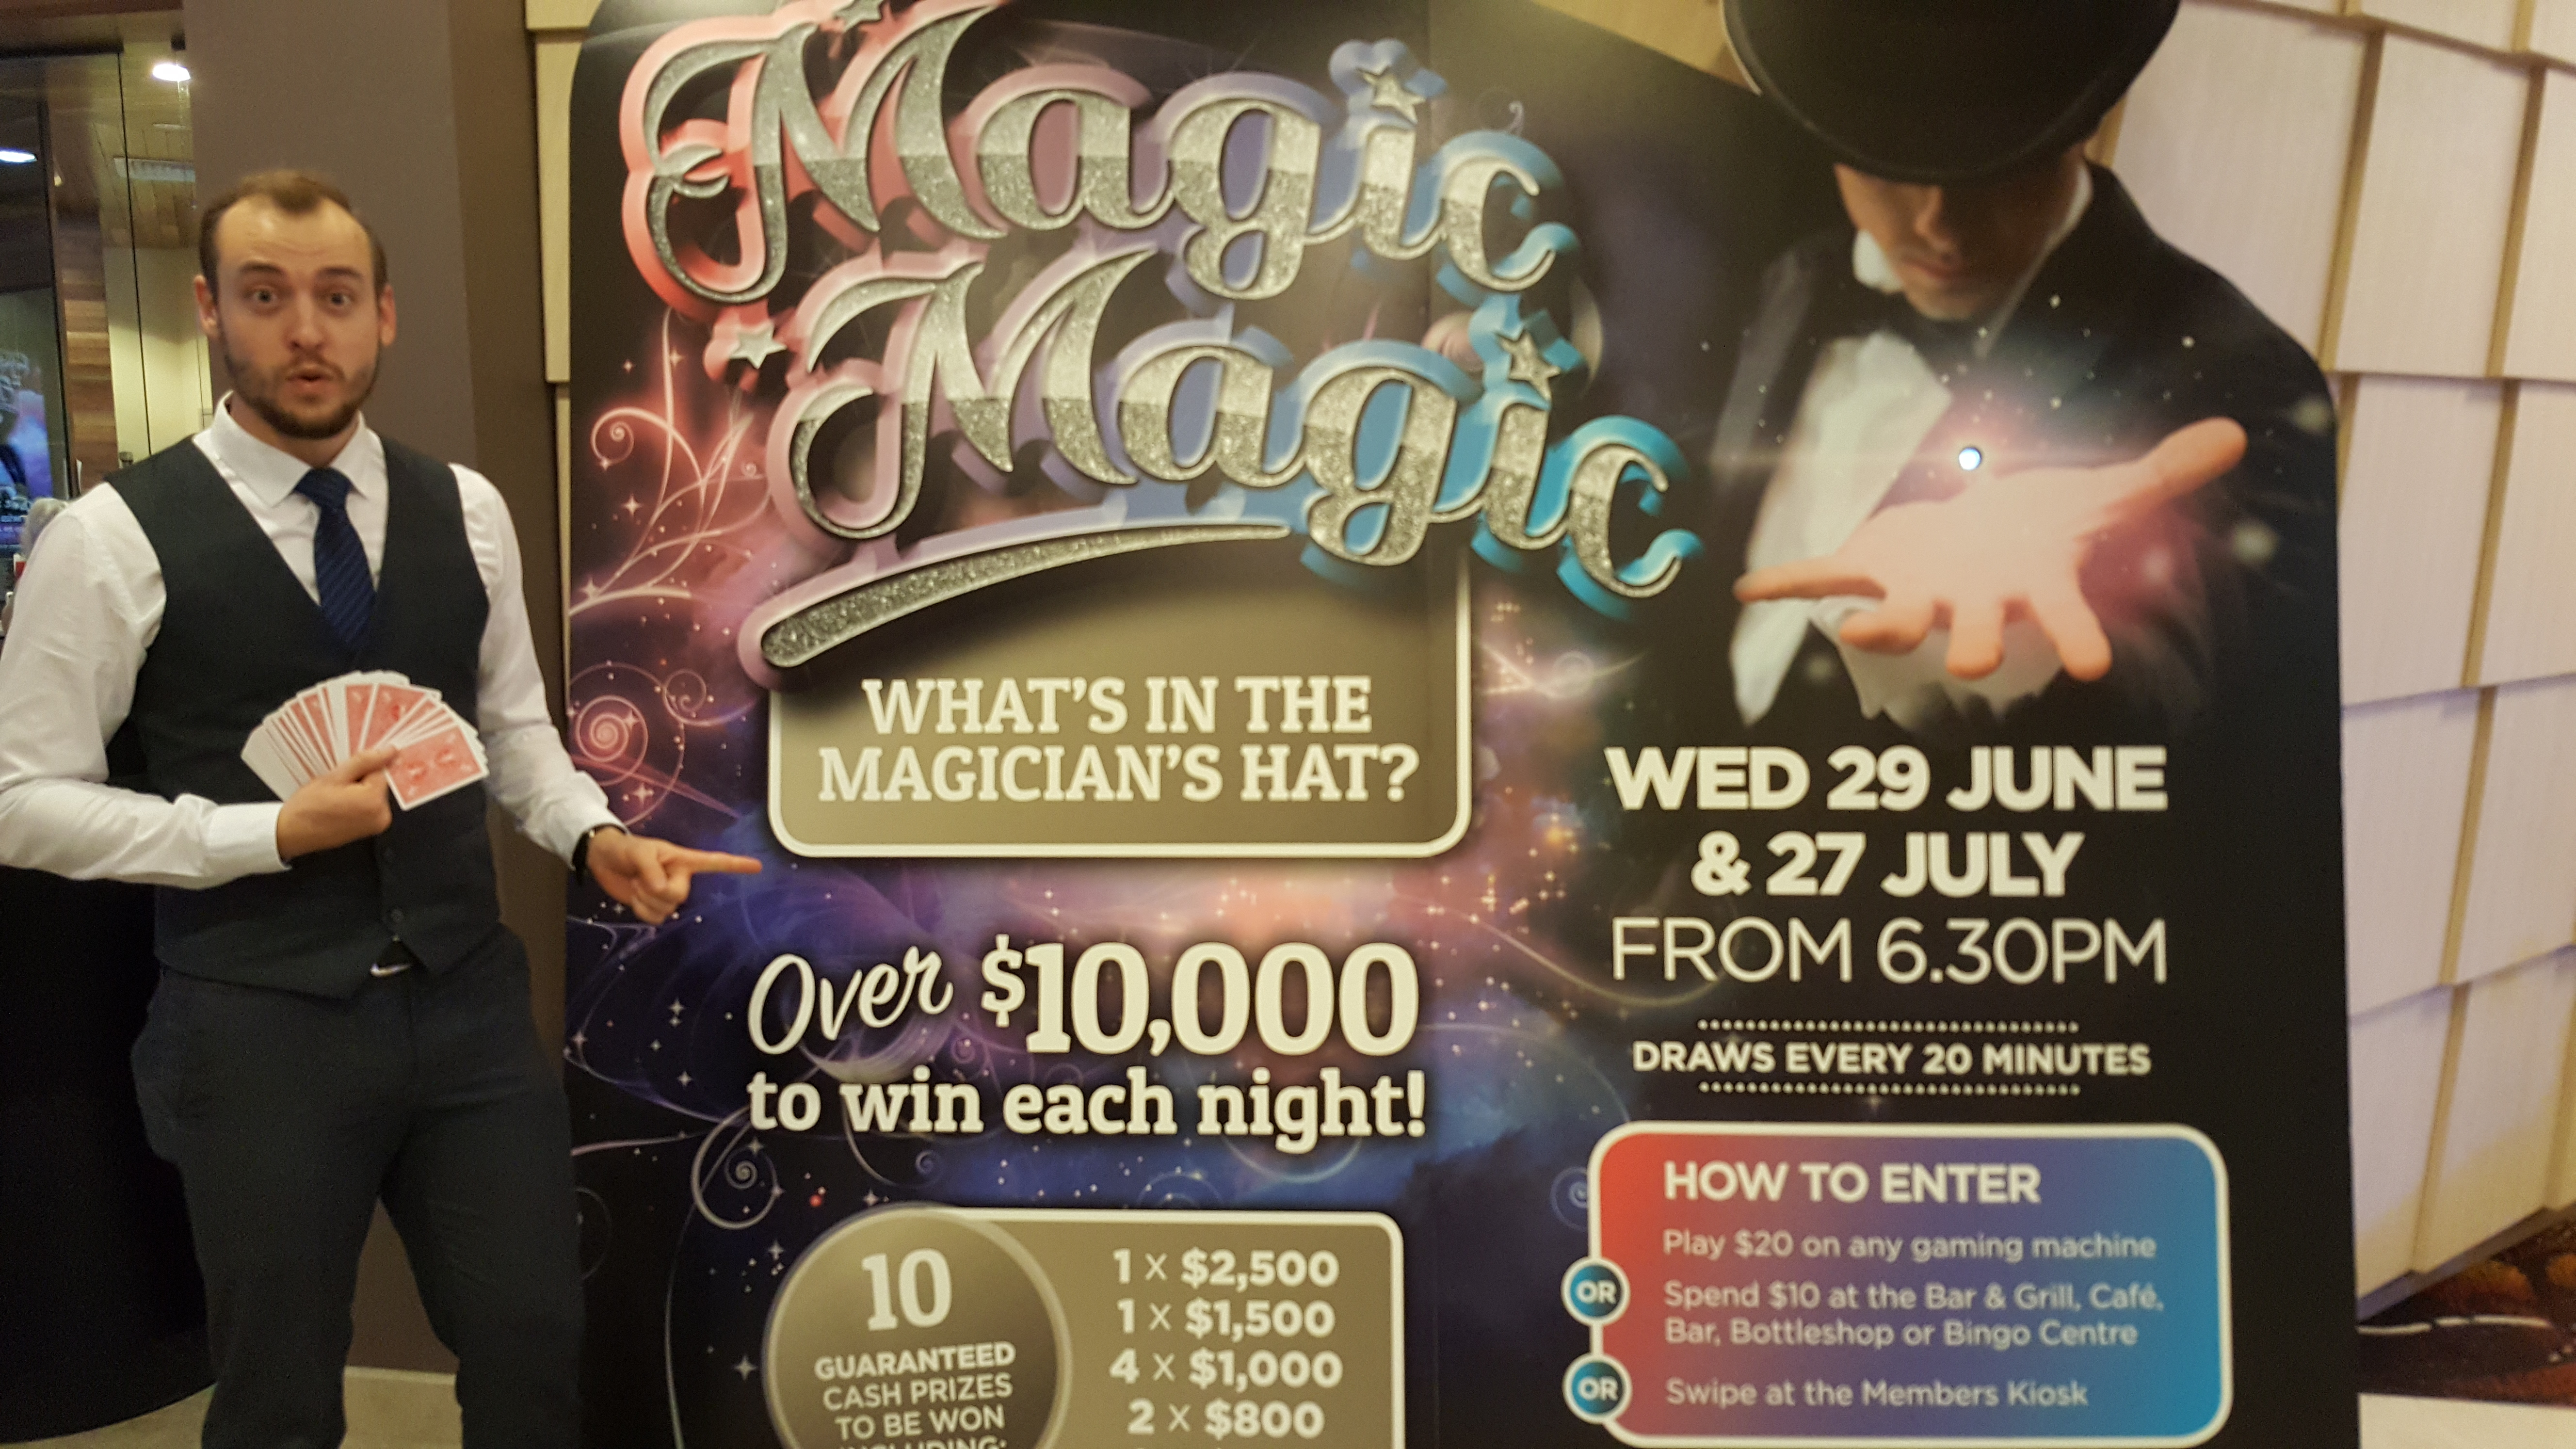 Magic Magic Promotion